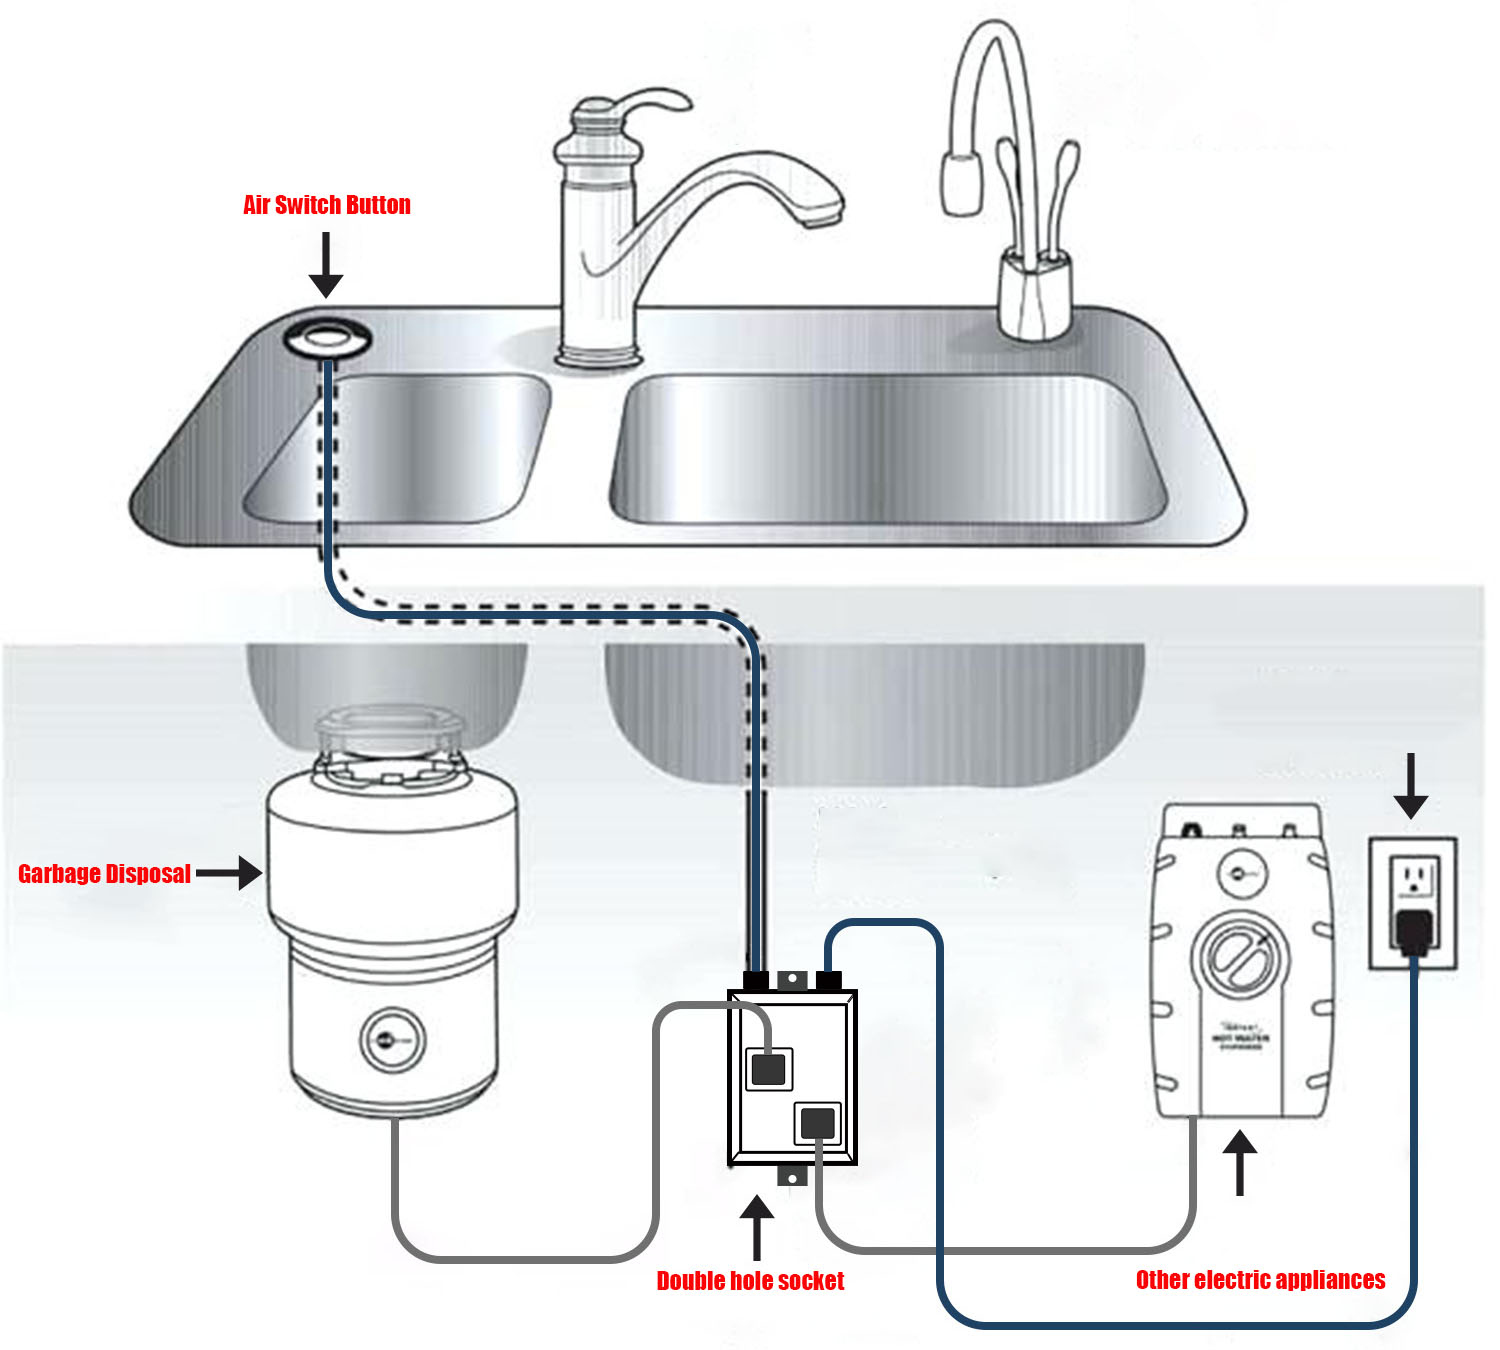 8 Best Garbage Disposal Switch In 2019 Buyer S Guide Restyled Junk